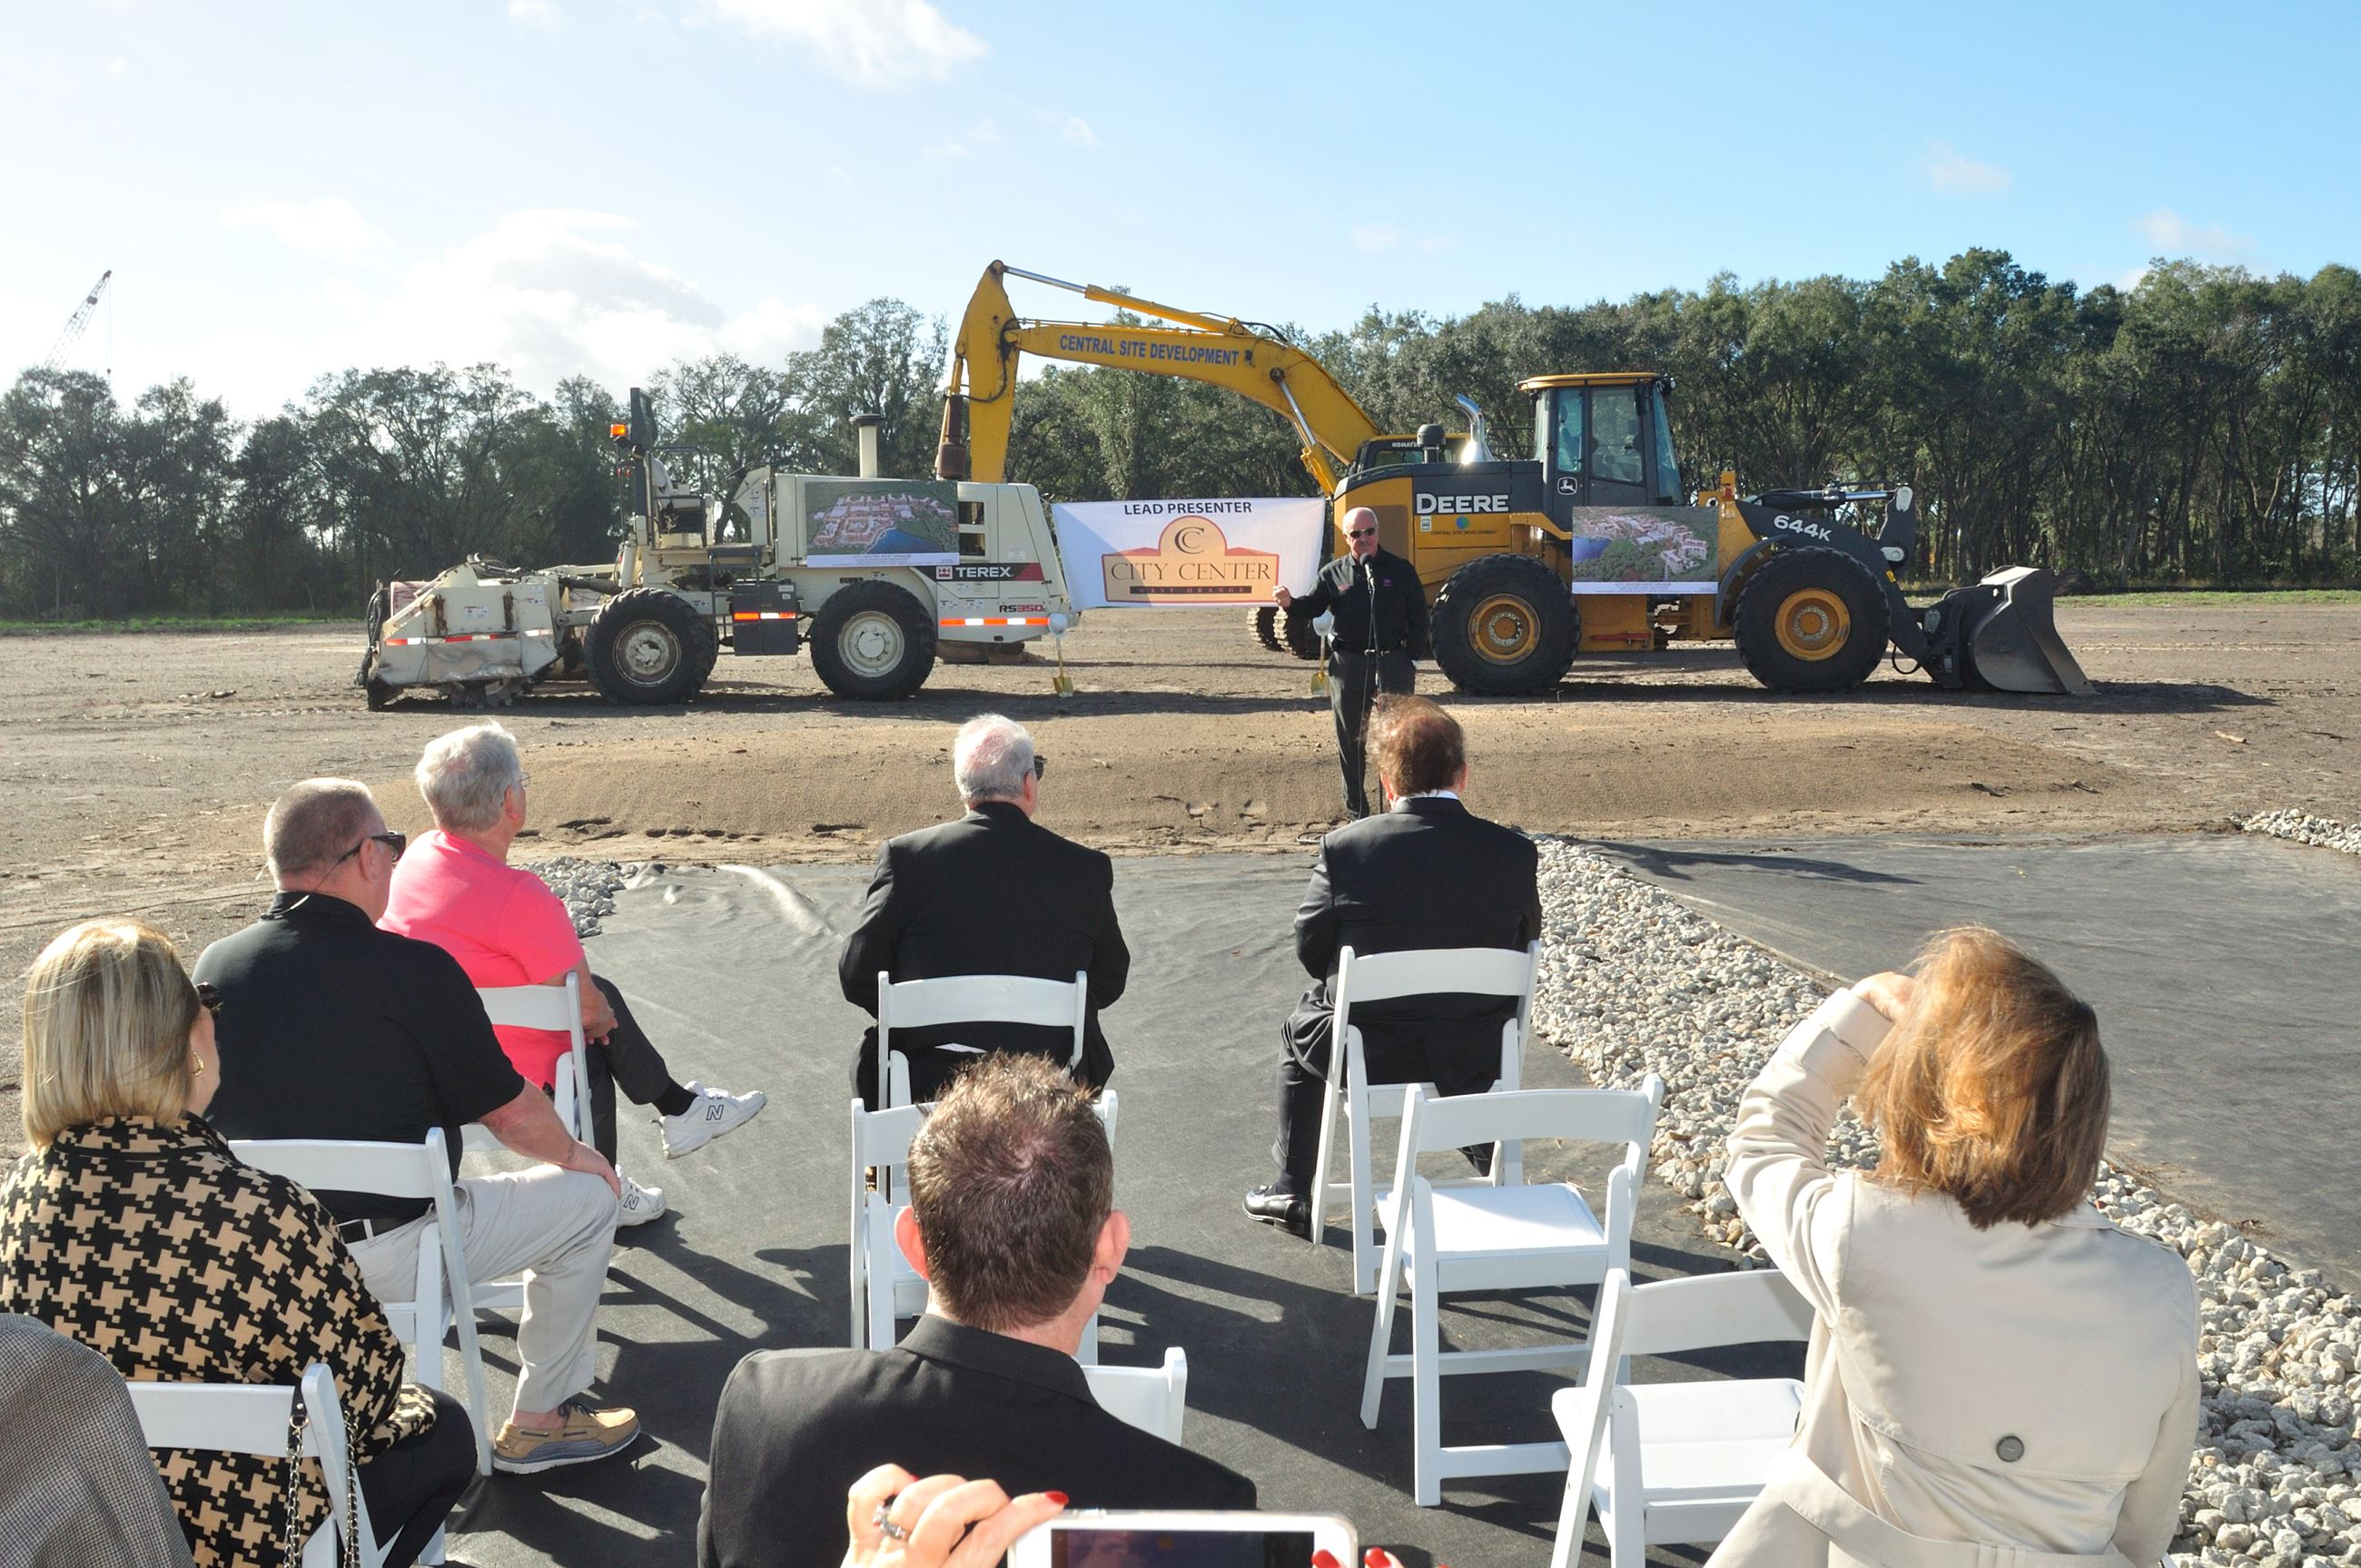 City Center West Orange Groundbreaking Ceremony